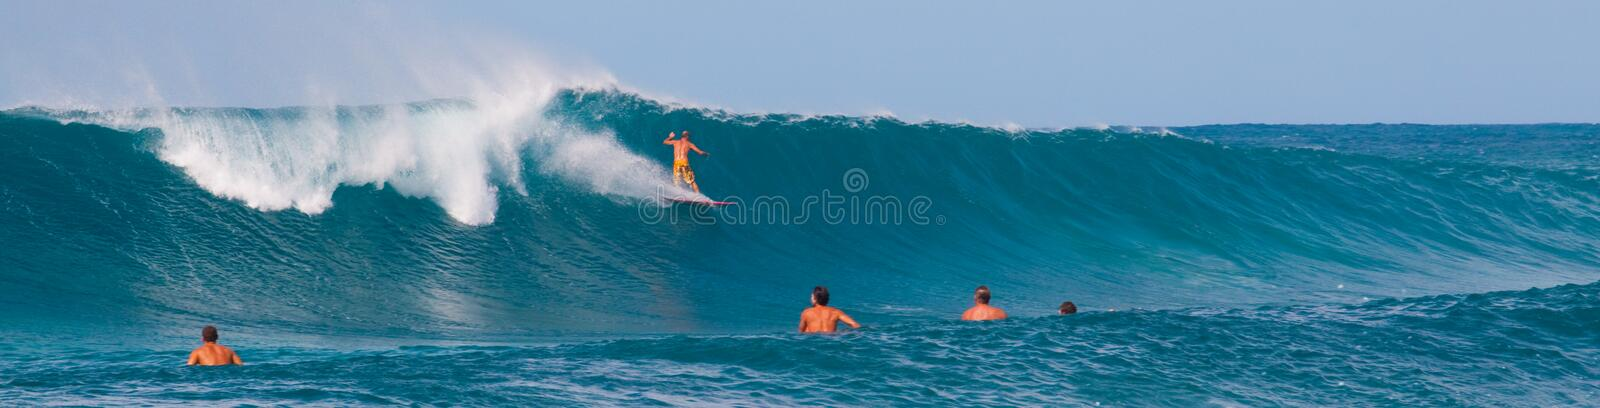 Grande onde surfant photographie stock